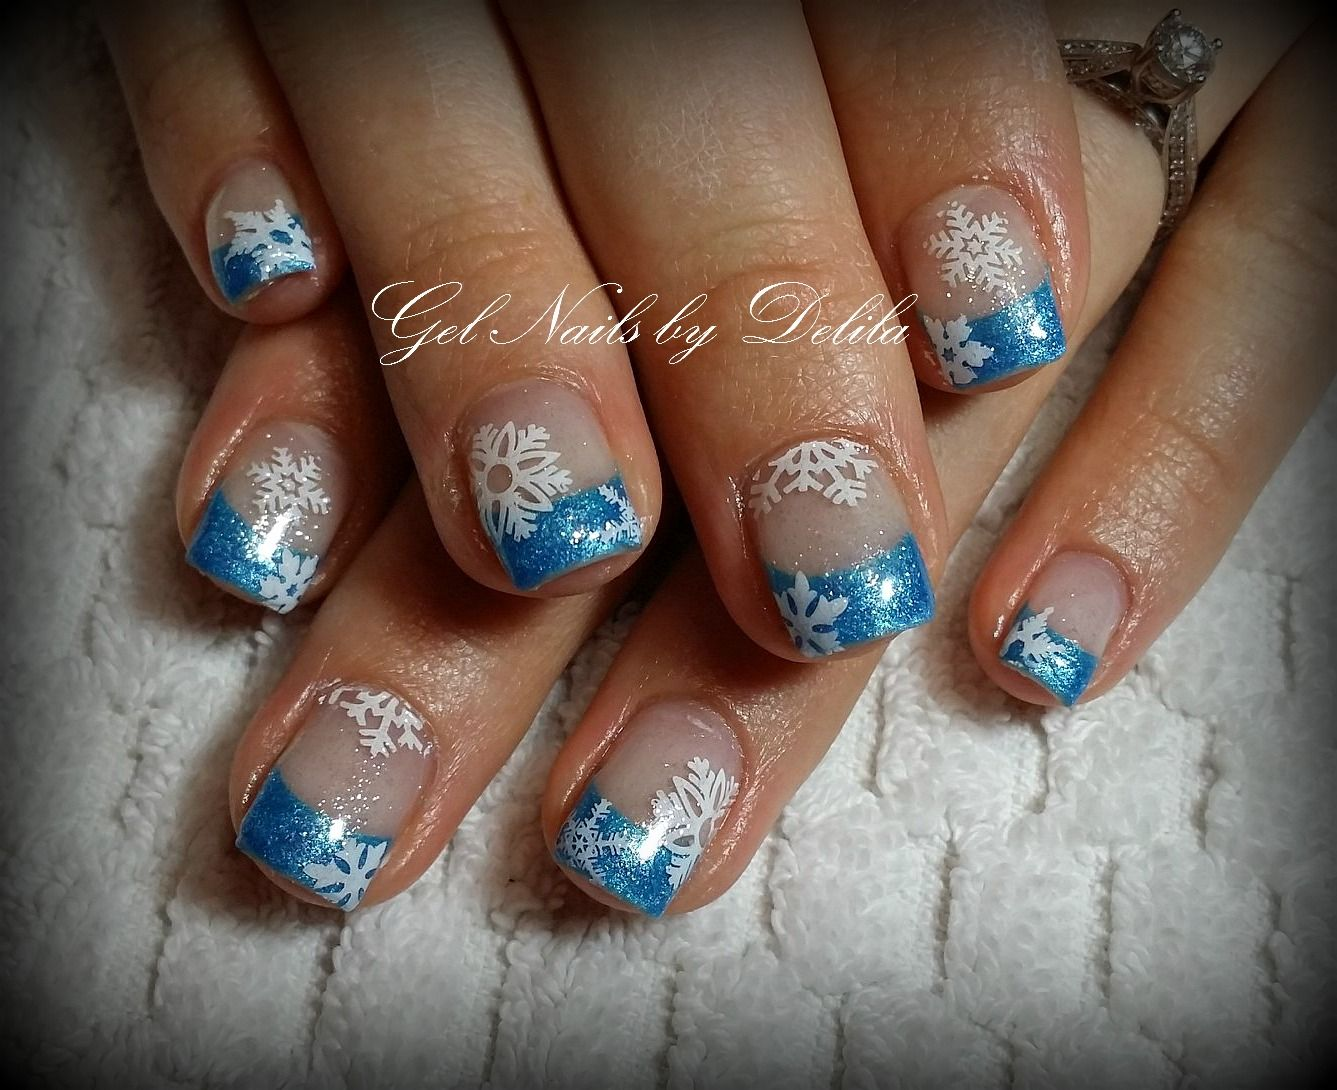 Pin by Dawn Voss on Christmas nail designs | Pinterest